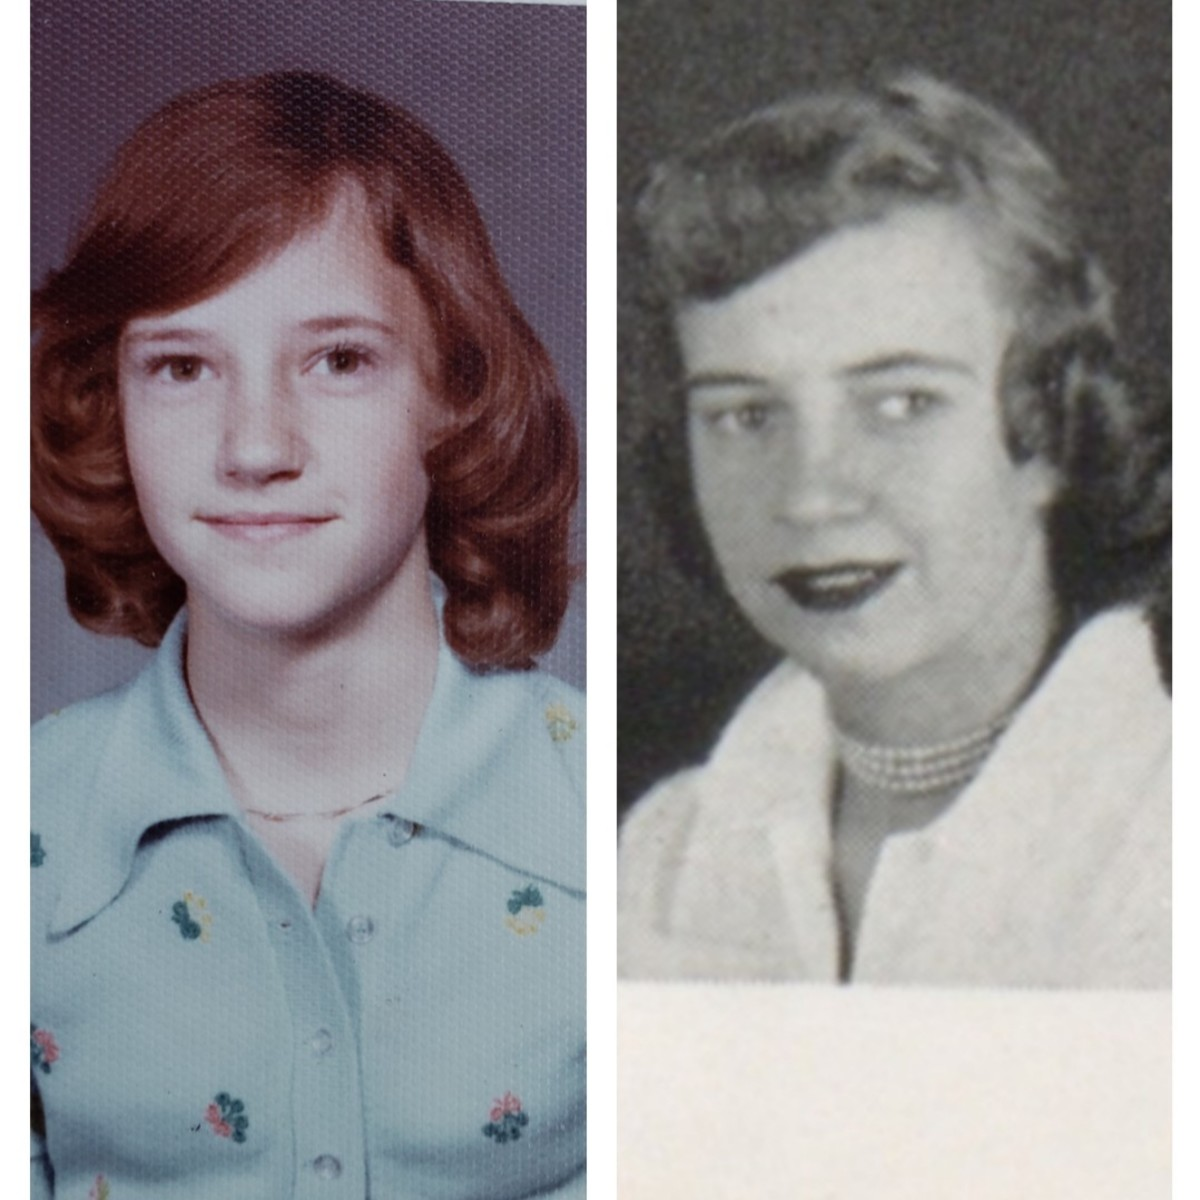 30 Years of Waiting for My Mom's Birth Parents - Part 5